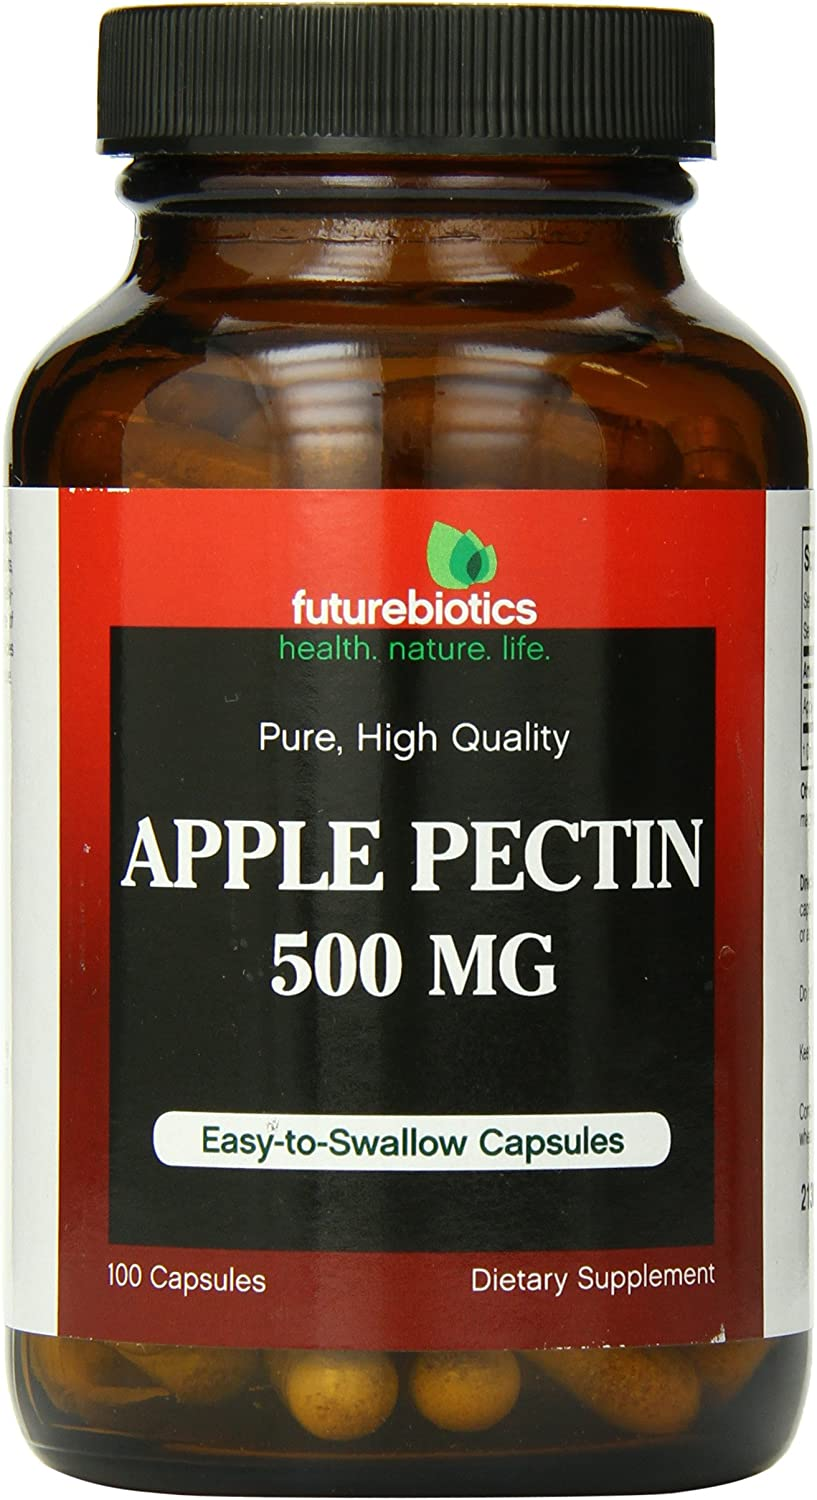 Futurebiotics Apple Pectin 500 mg, 100 Capsules